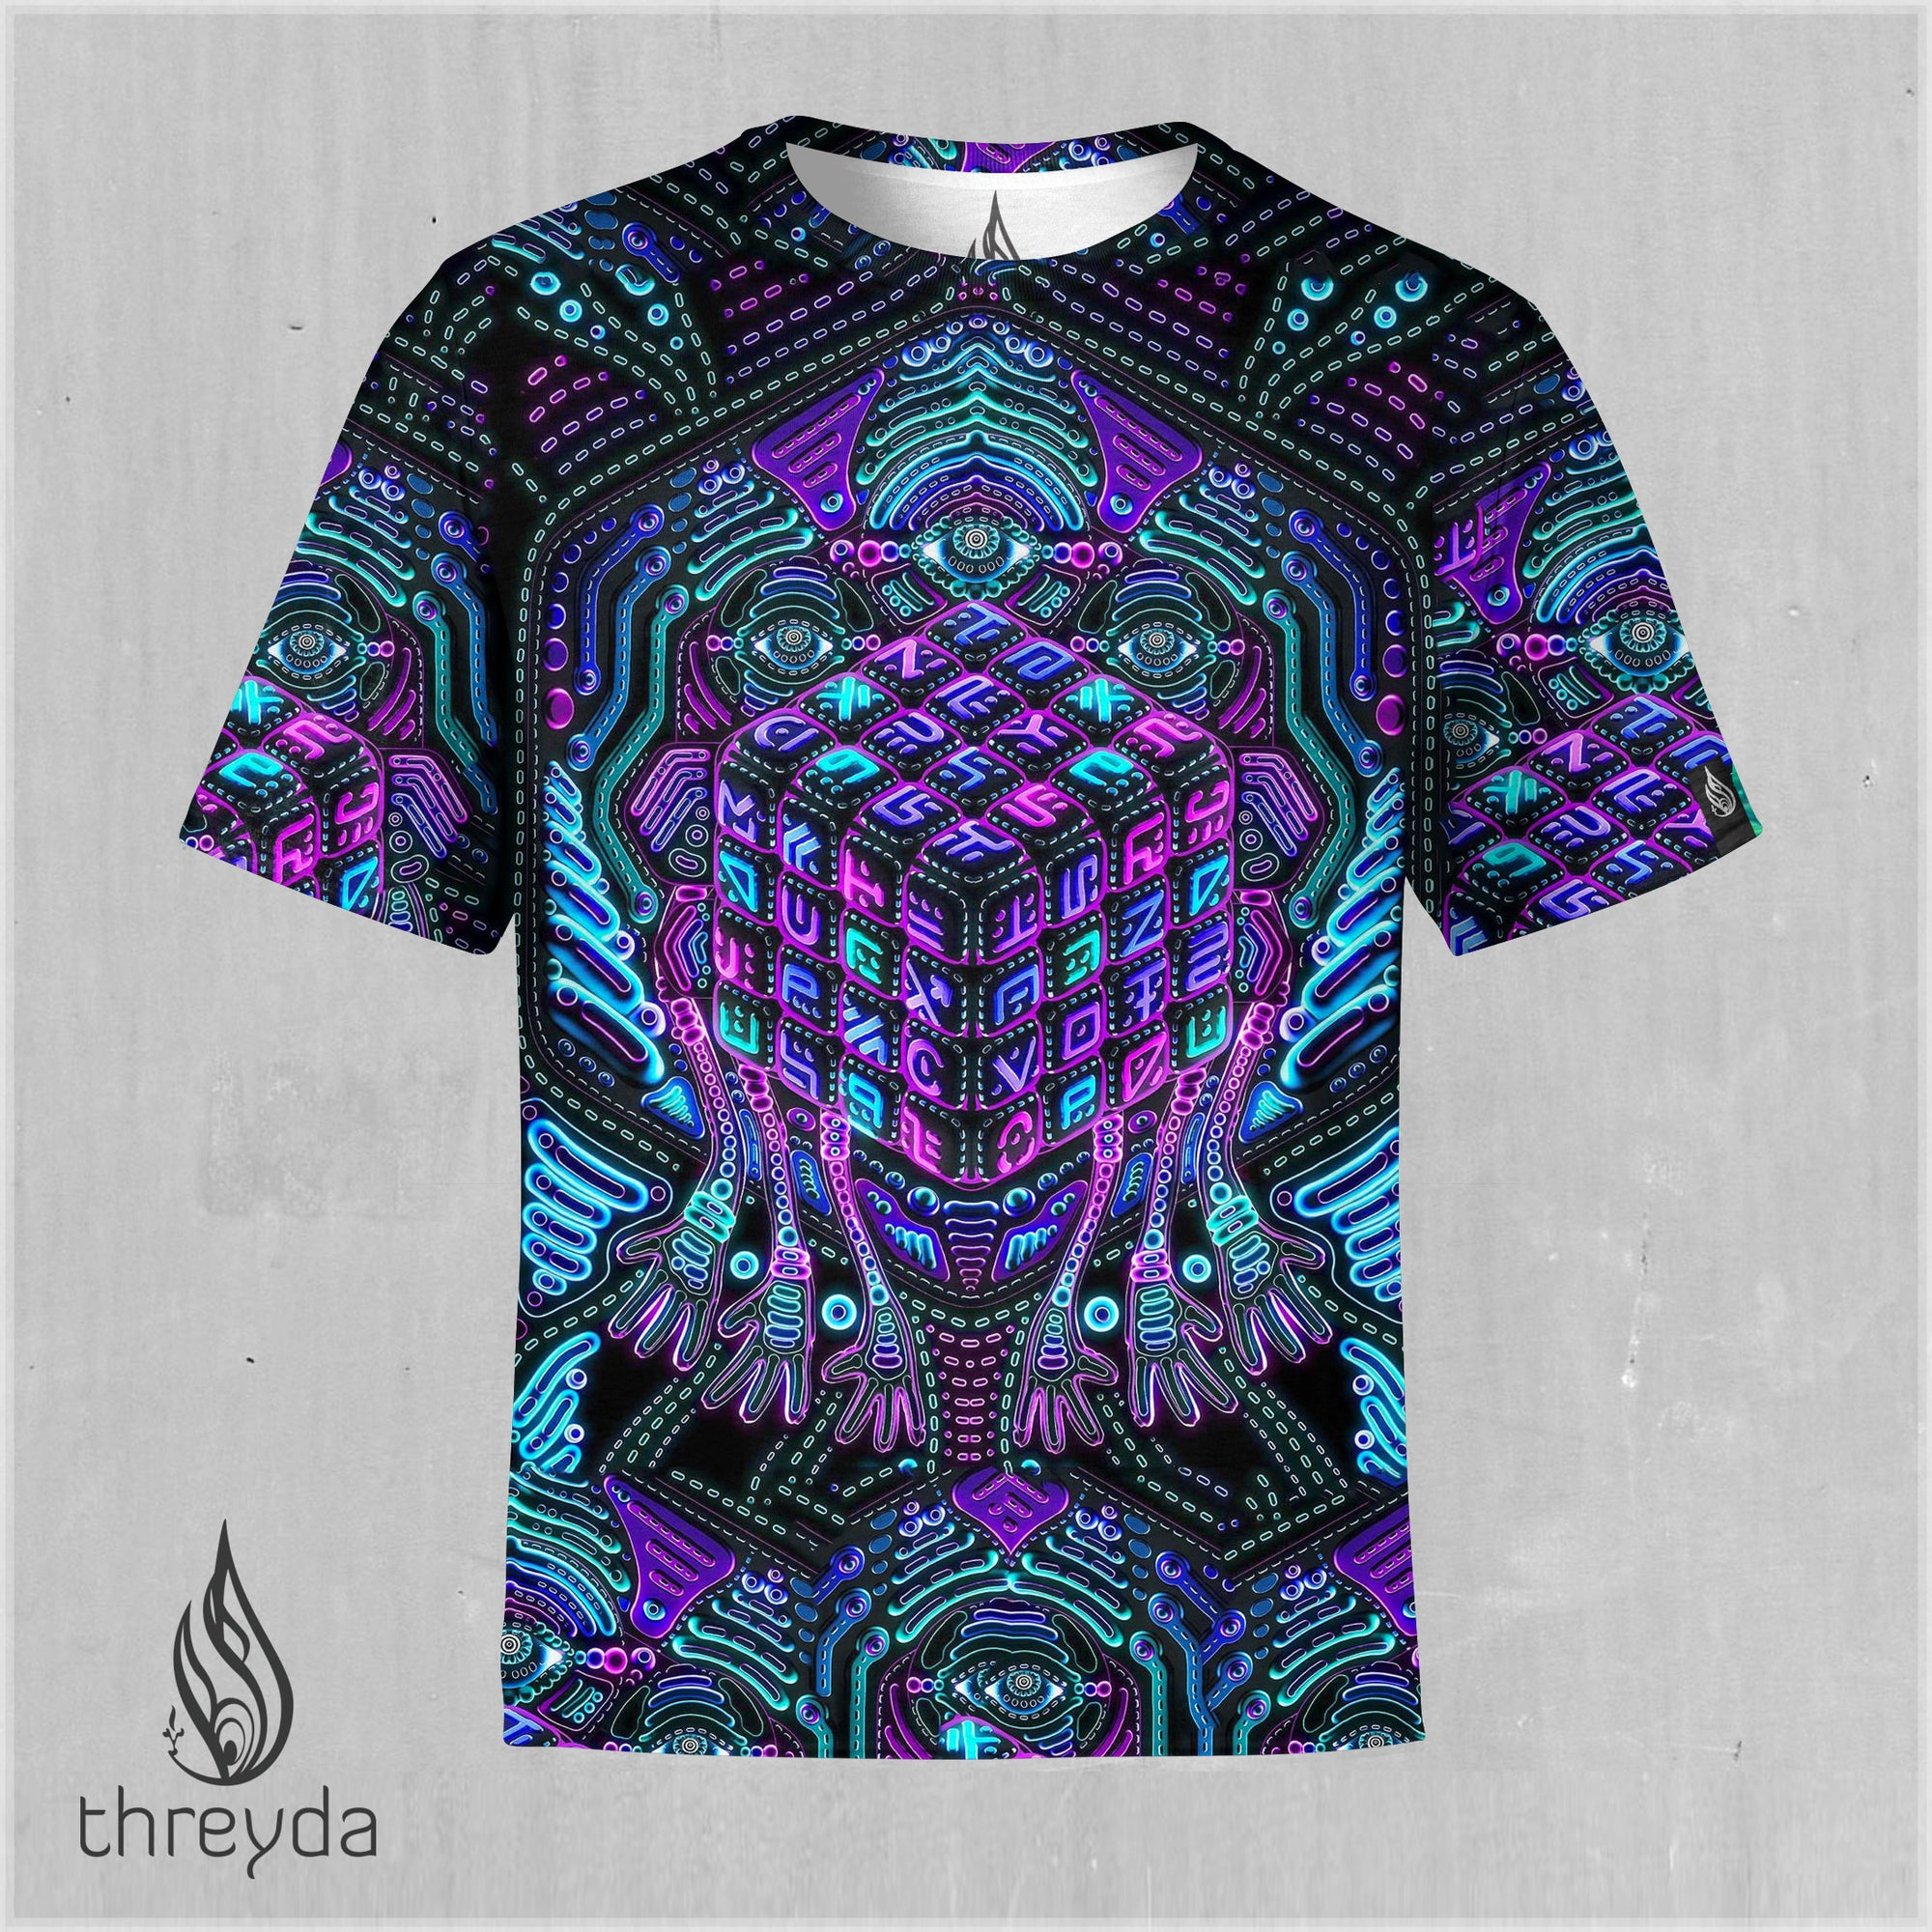 Gift Sublimation Tee by Ben Ridgway